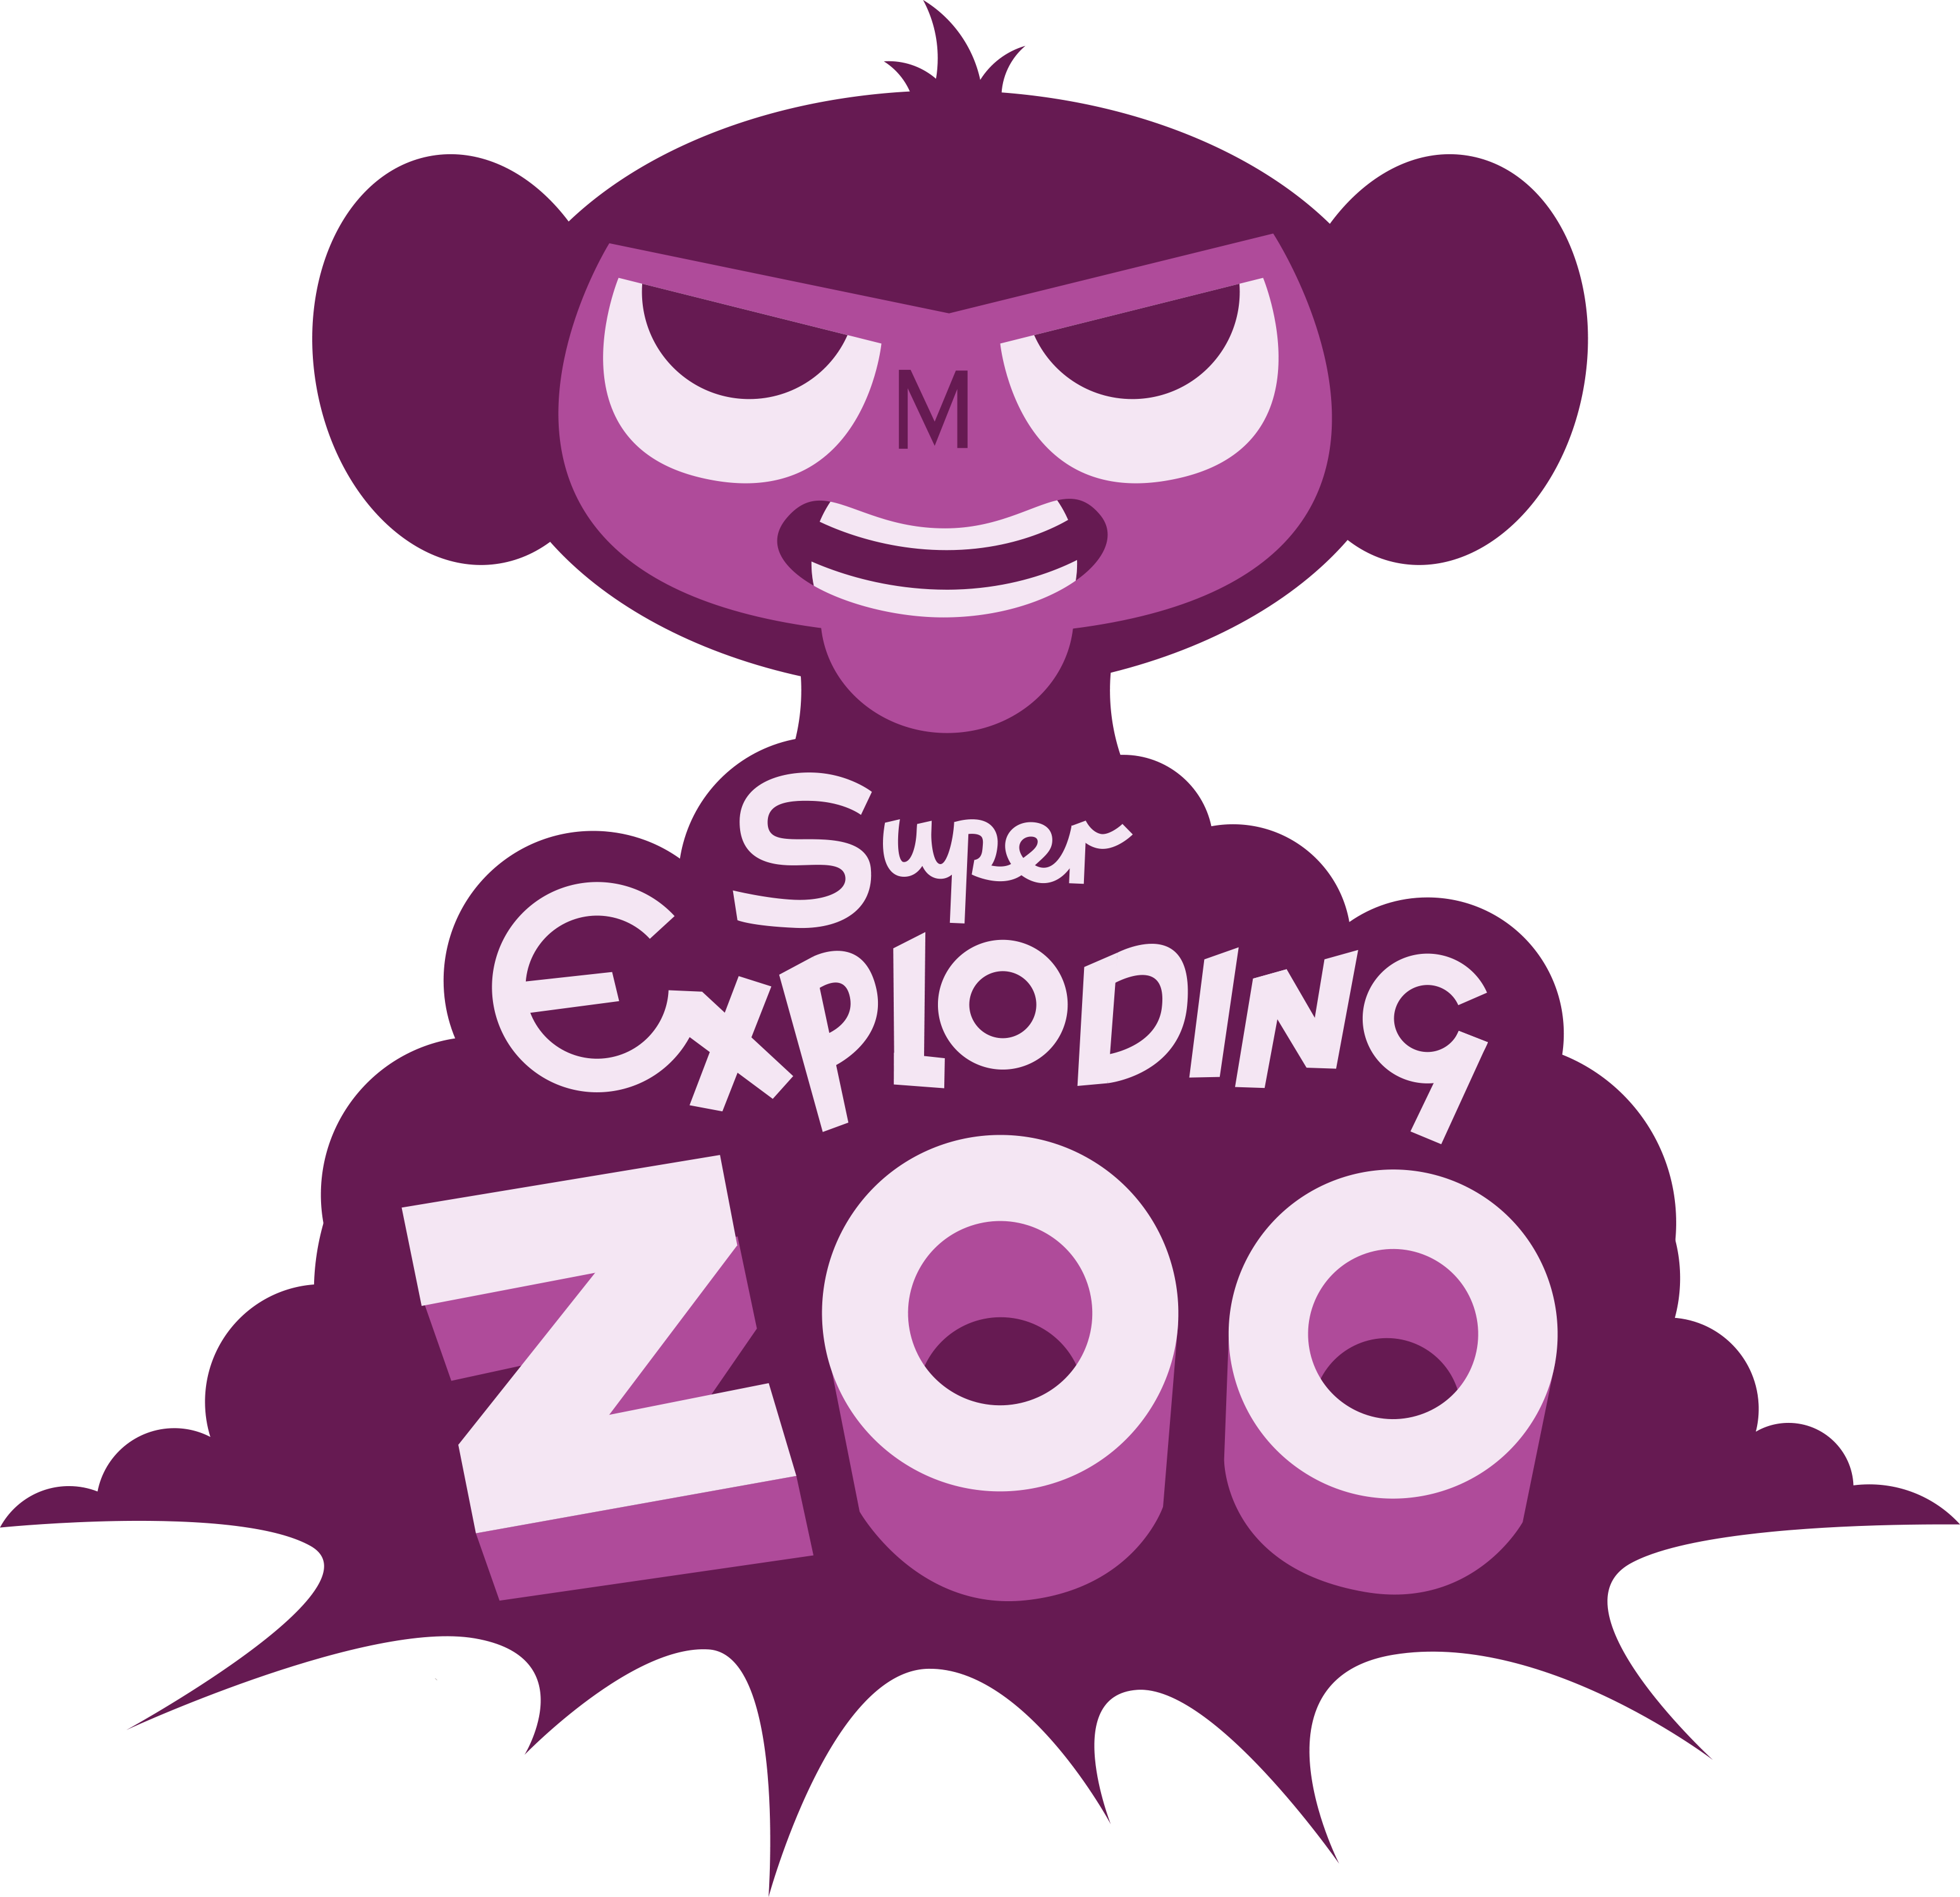 Exploding basketball clipart clip art library stock Super Exploding Zoo (Game) - Giant Bomb clip art library stock